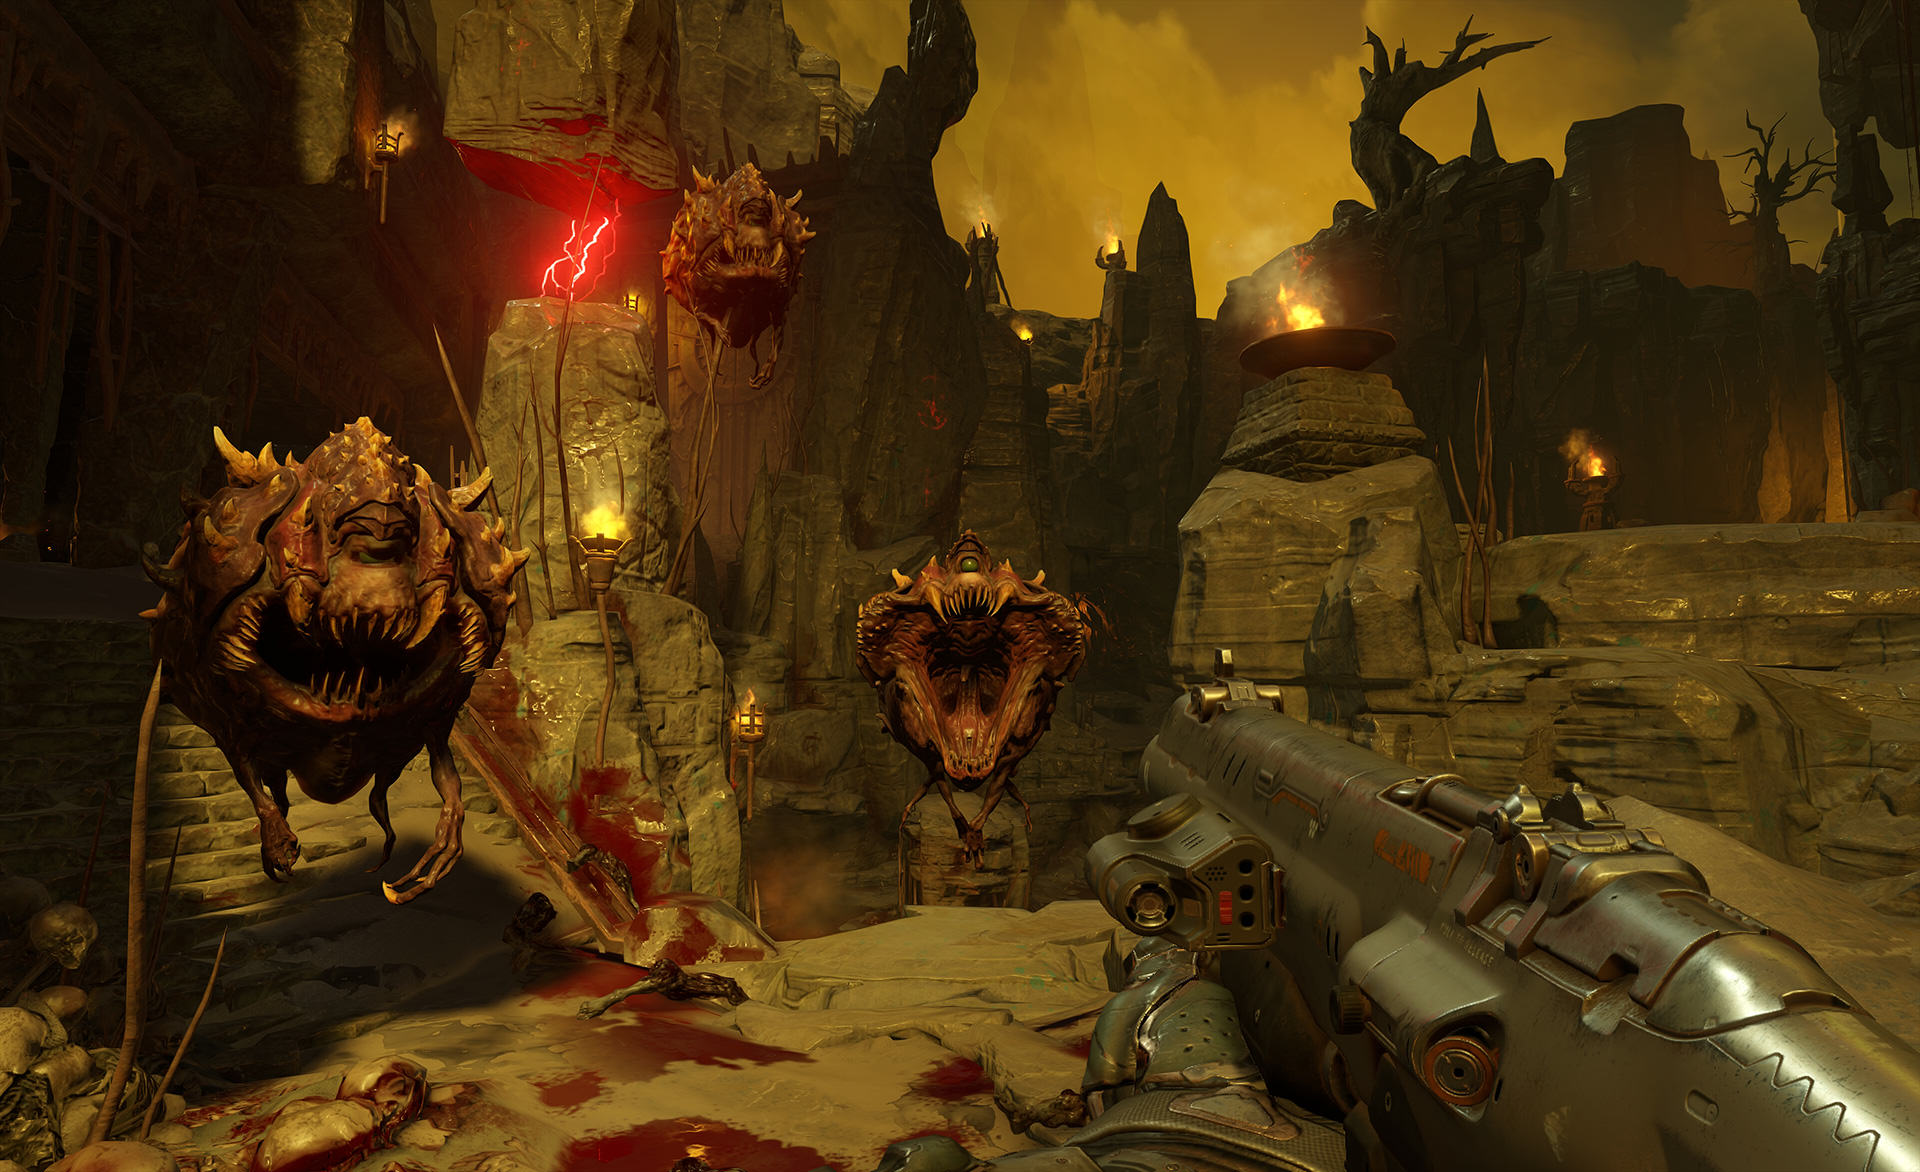 doom cacodemons screenshot 1920.0 DOOM Higher Difficulty And Non Linear Exploration Confirmed